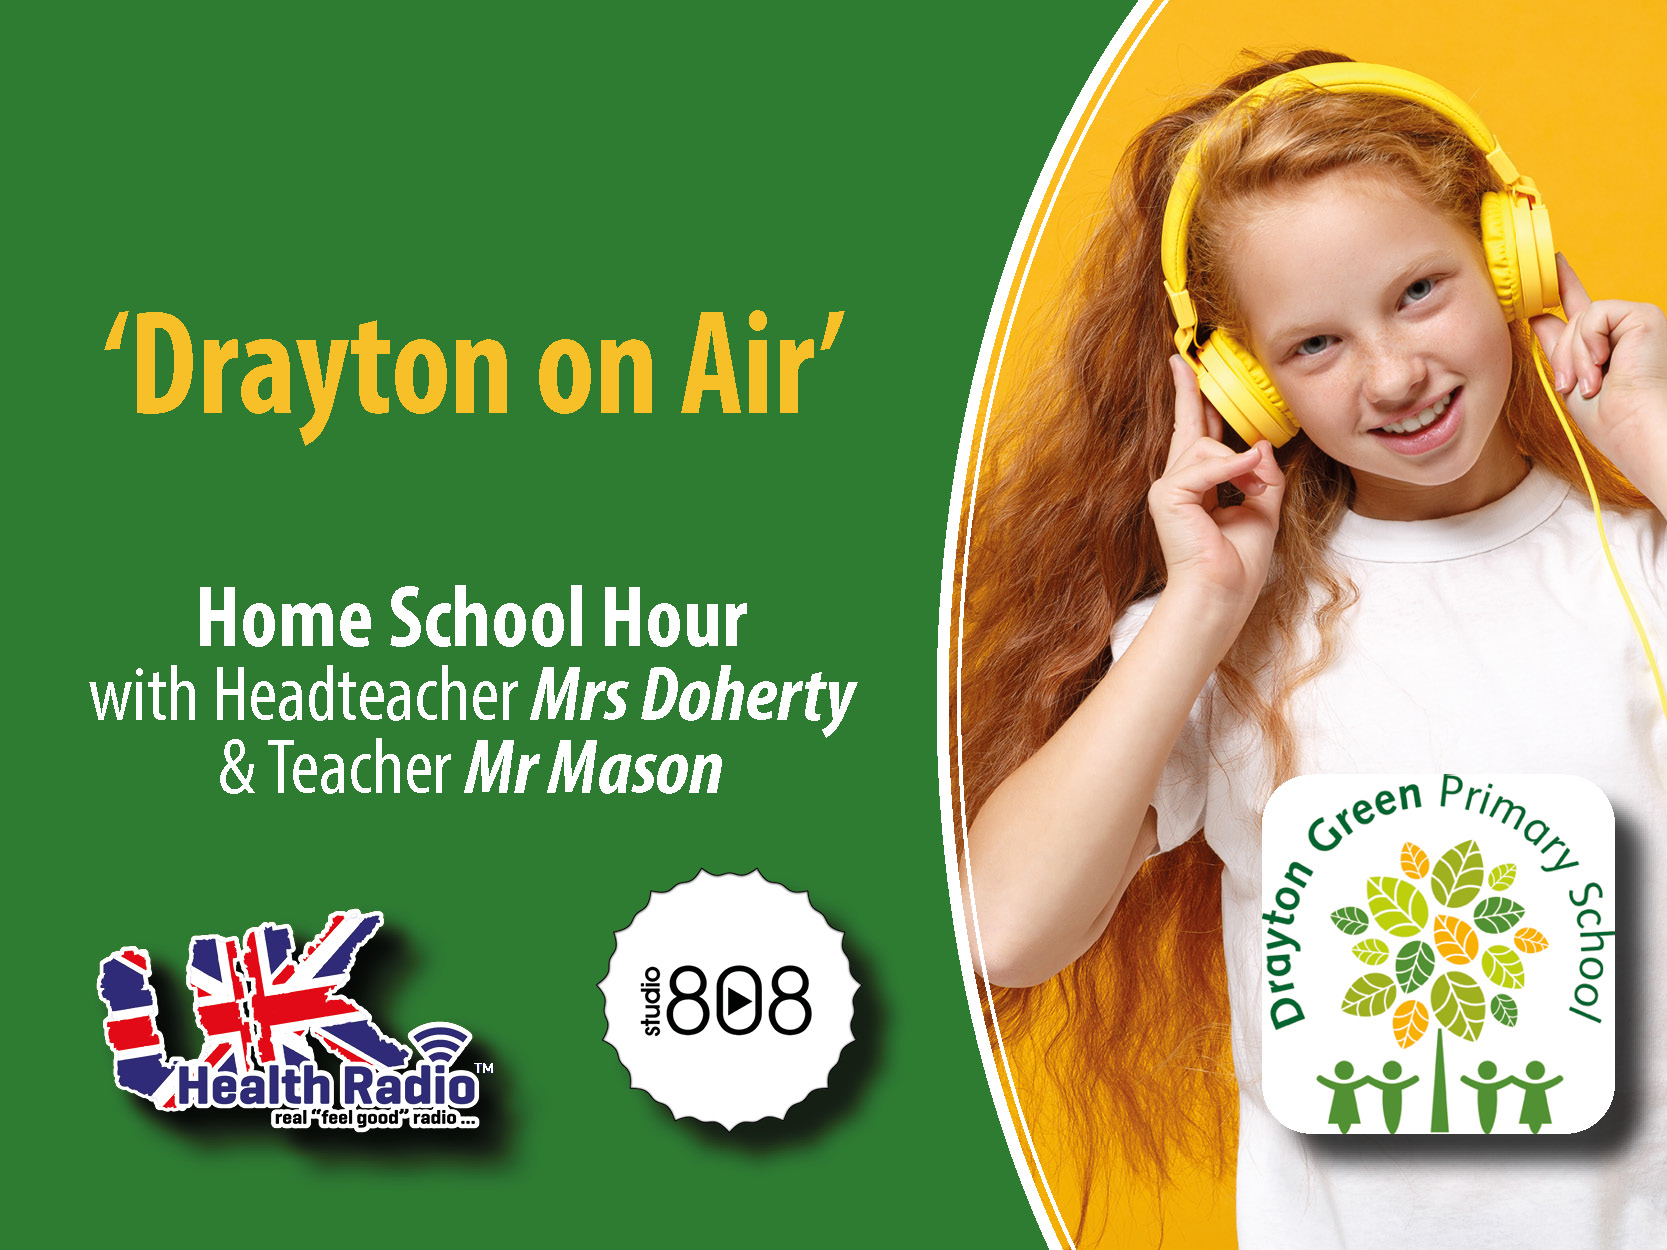 UK Health Radio launches 'Drayton on Air' - Home learning with a local primary school to support children and parents during STAY AT HOME.